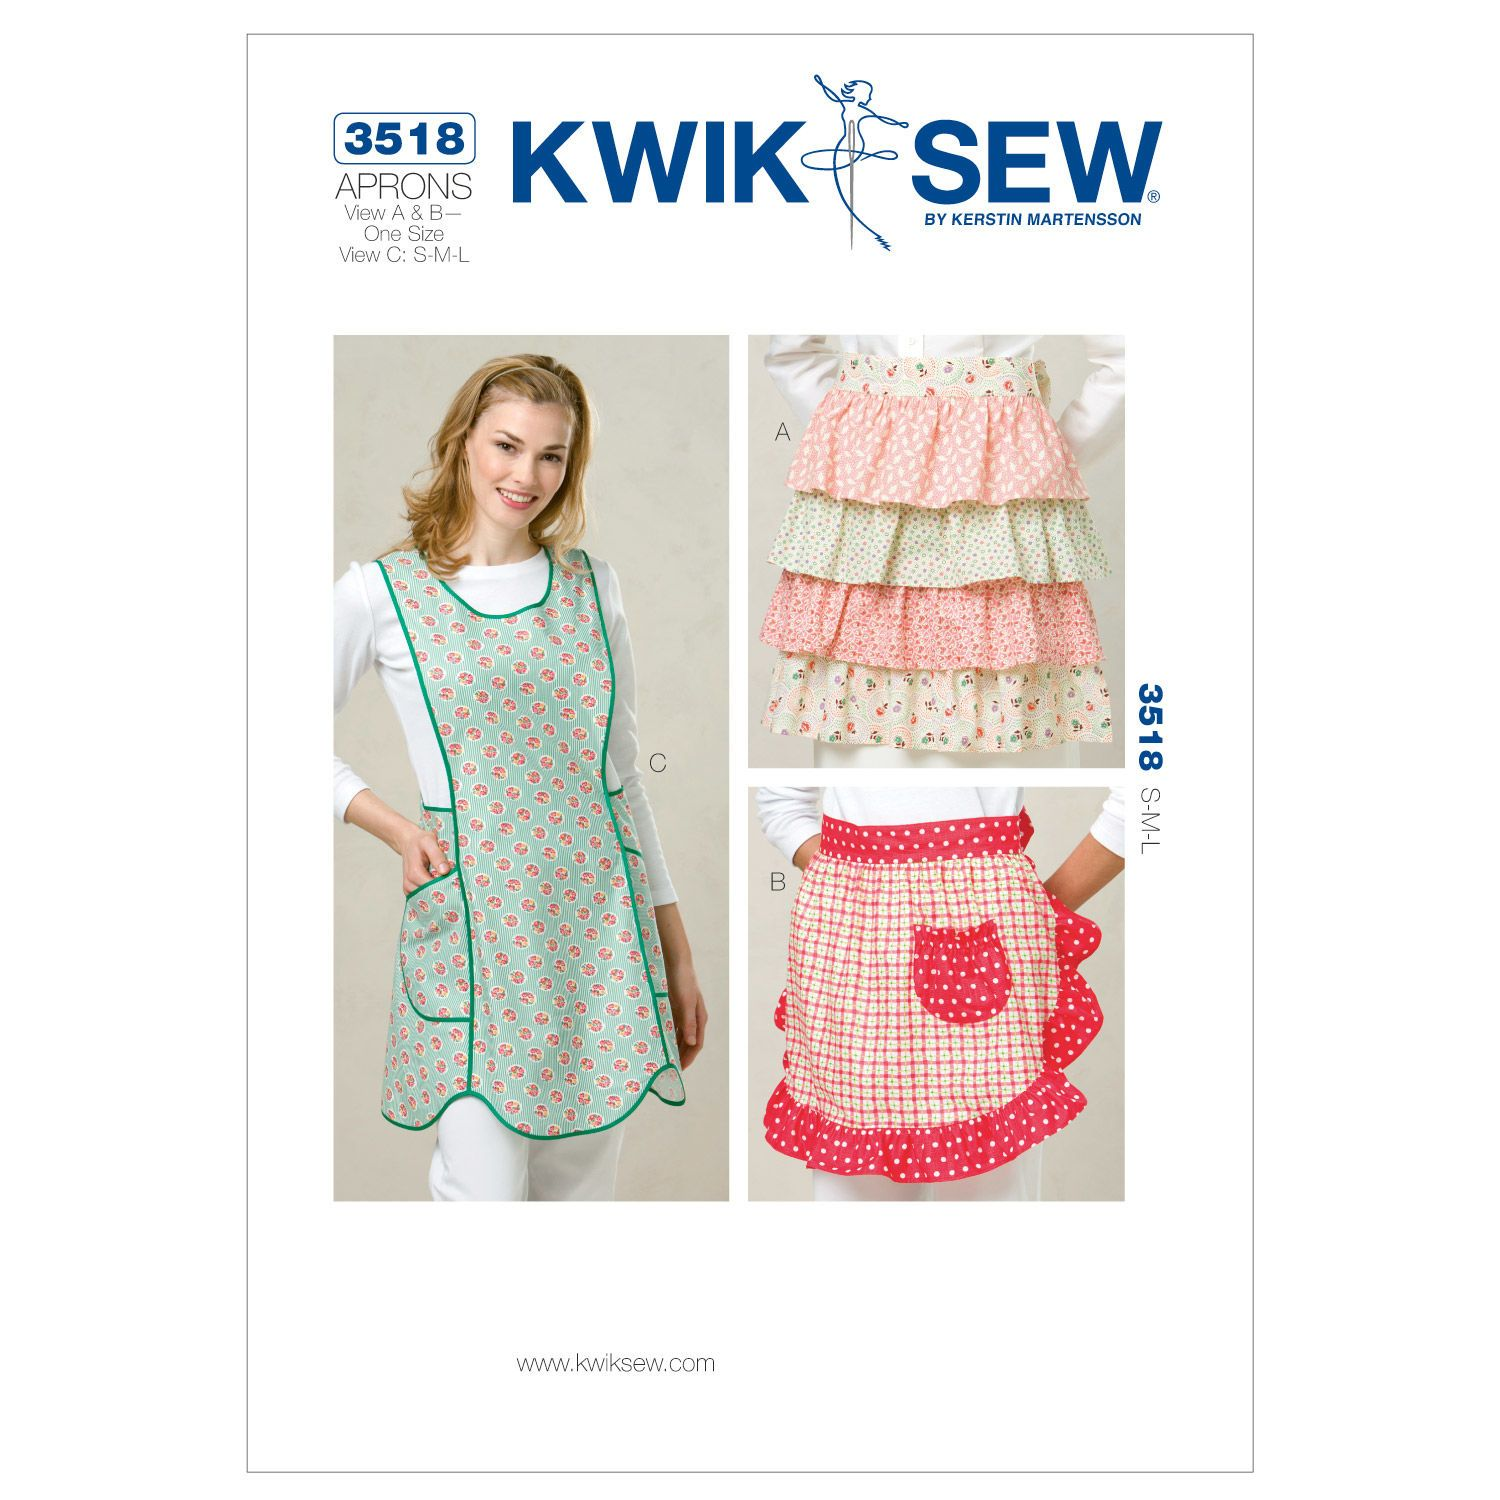 Kwik Sew Misses Aprons - K3518 | Kwik sew, Apron and Patterns